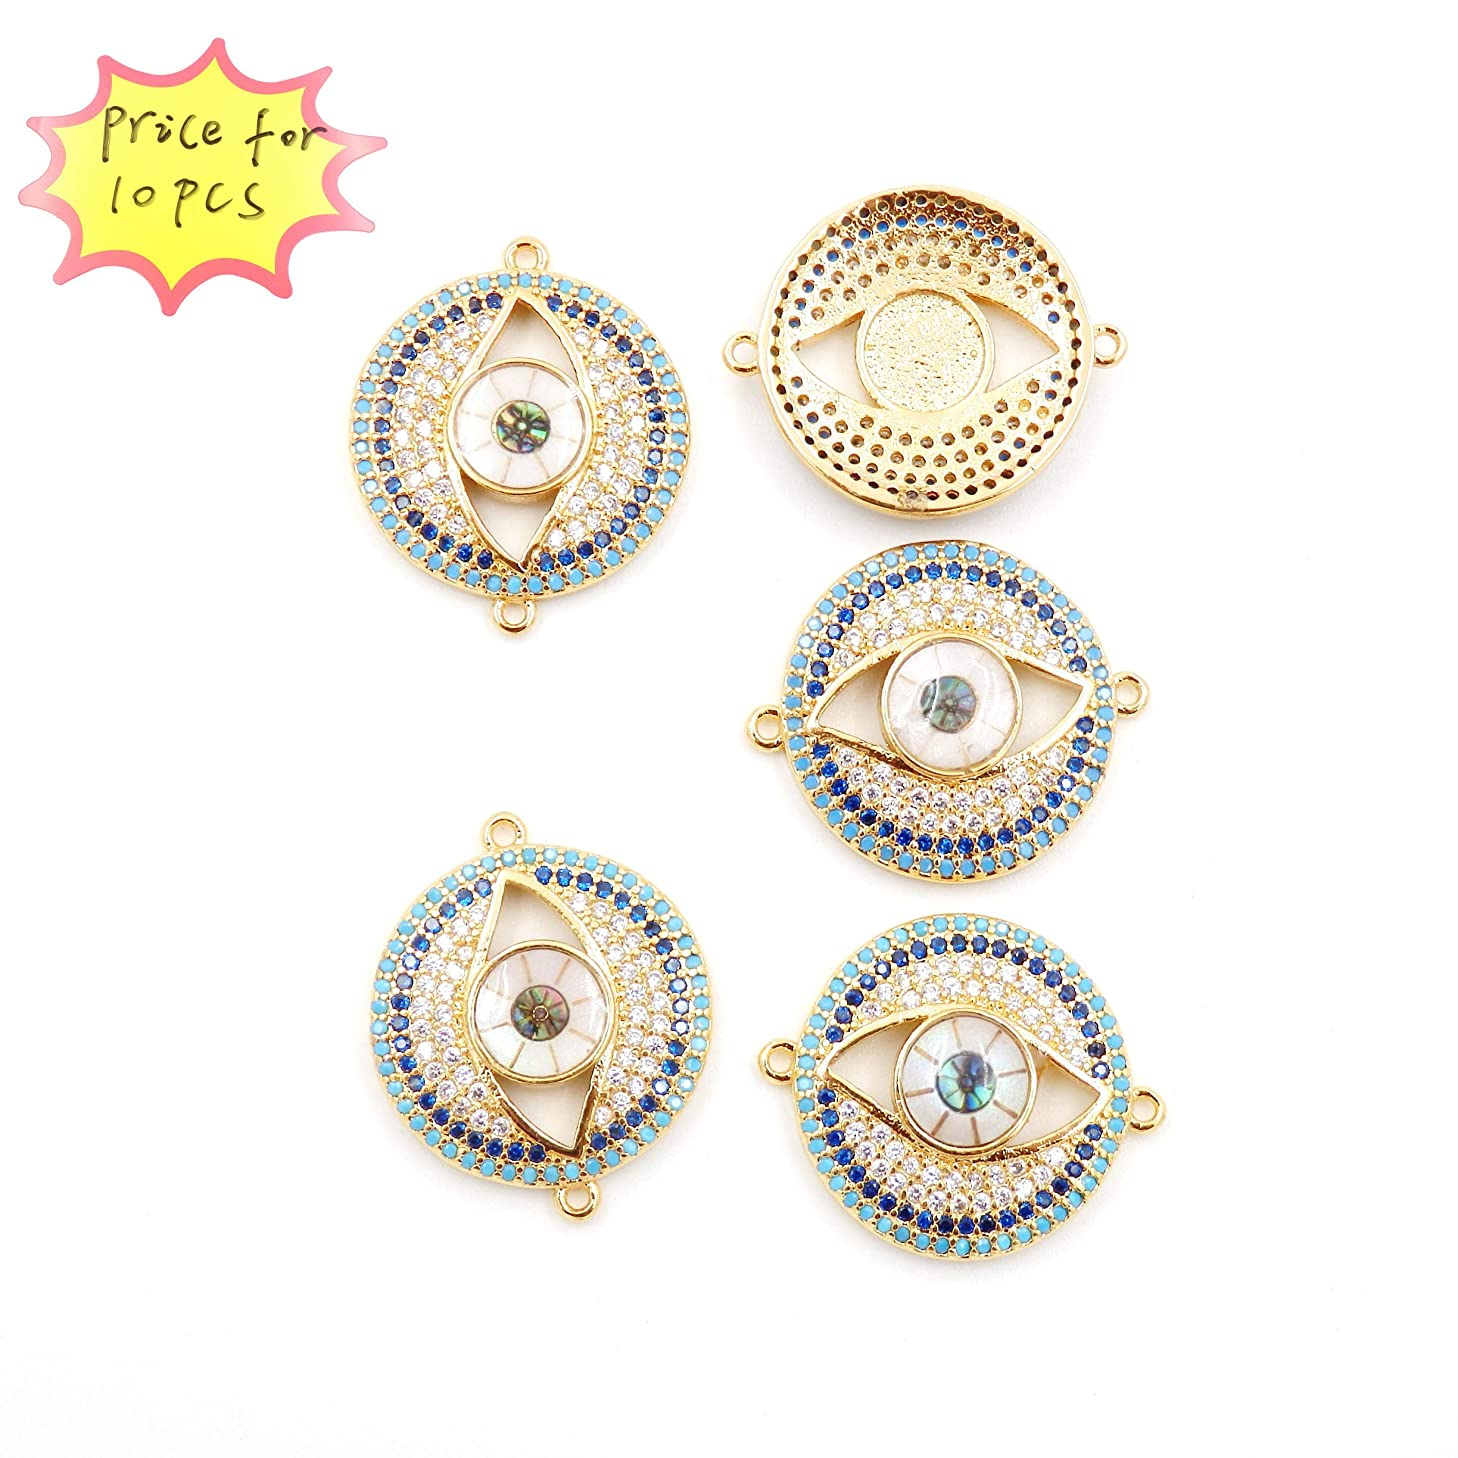 Charms for Jewelry Making, Connector for Bracelet, Sold per Bag 10pcs Inside (Gold Evil Eyes 20mm)